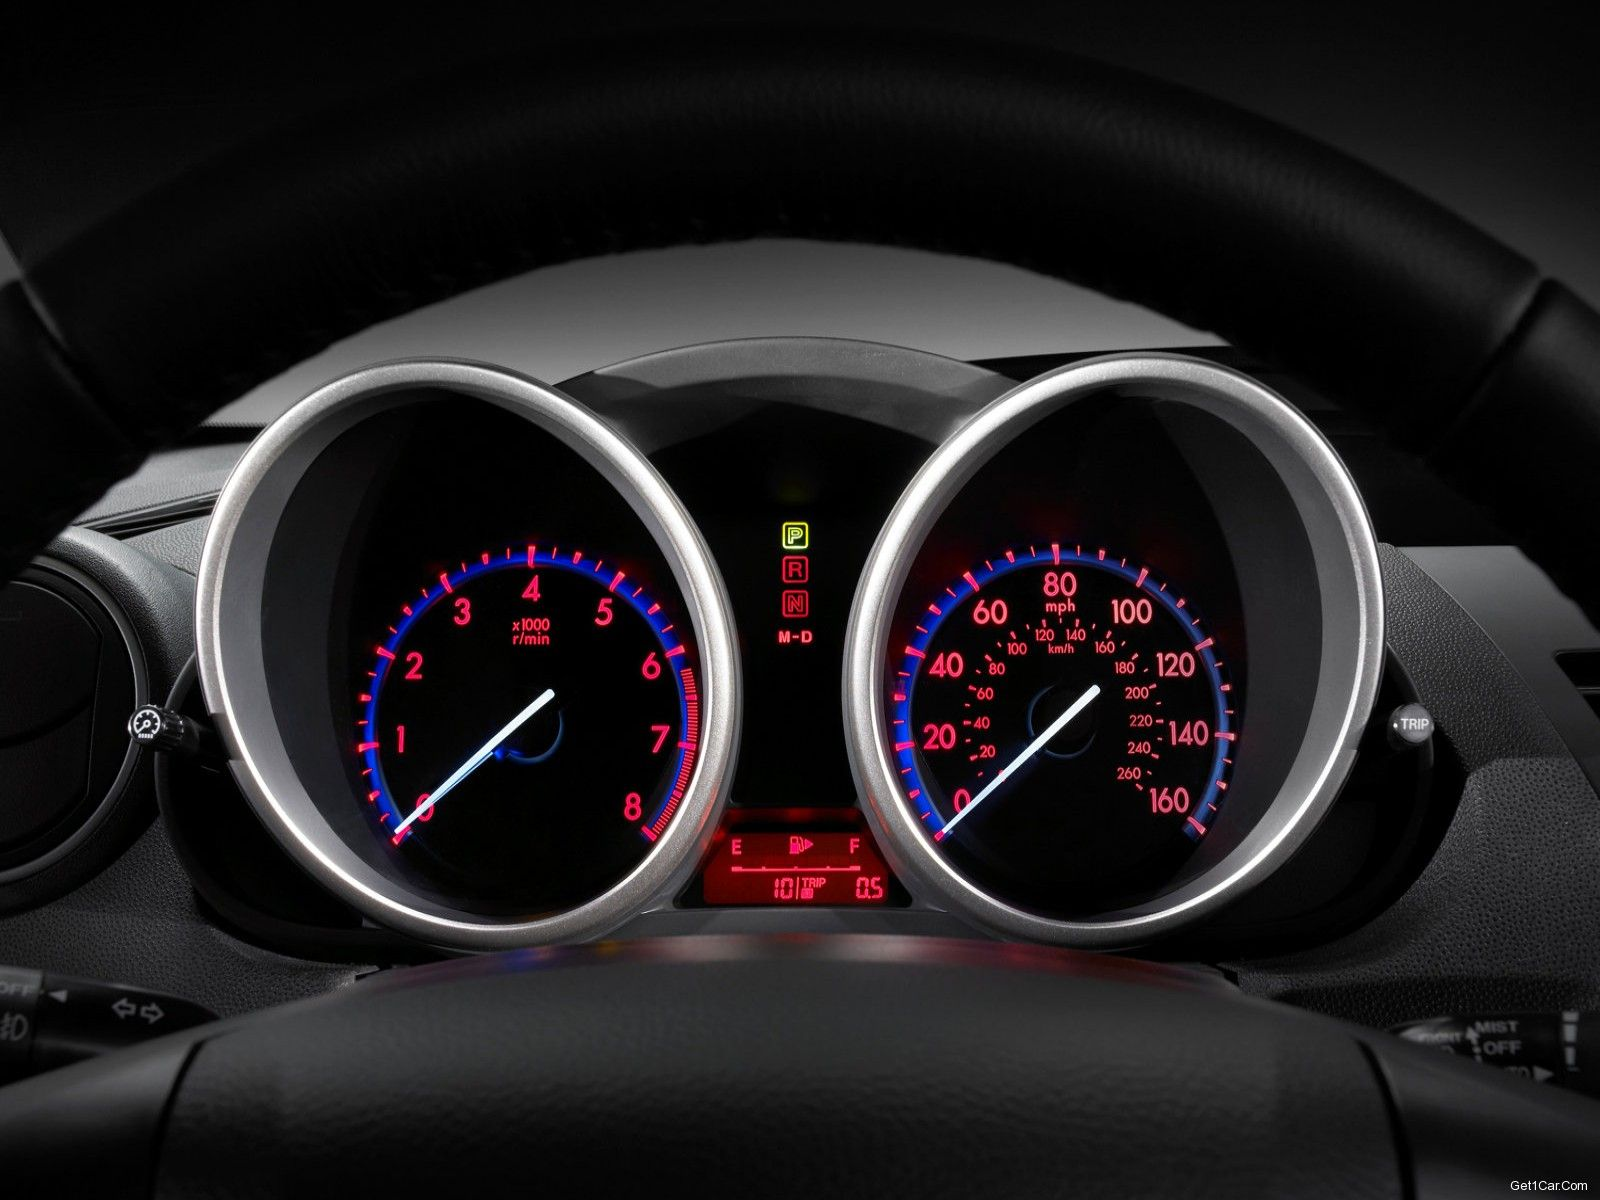 Mazda 3 2010 Sedan Instrument Panel Wallpaper 1600x1200